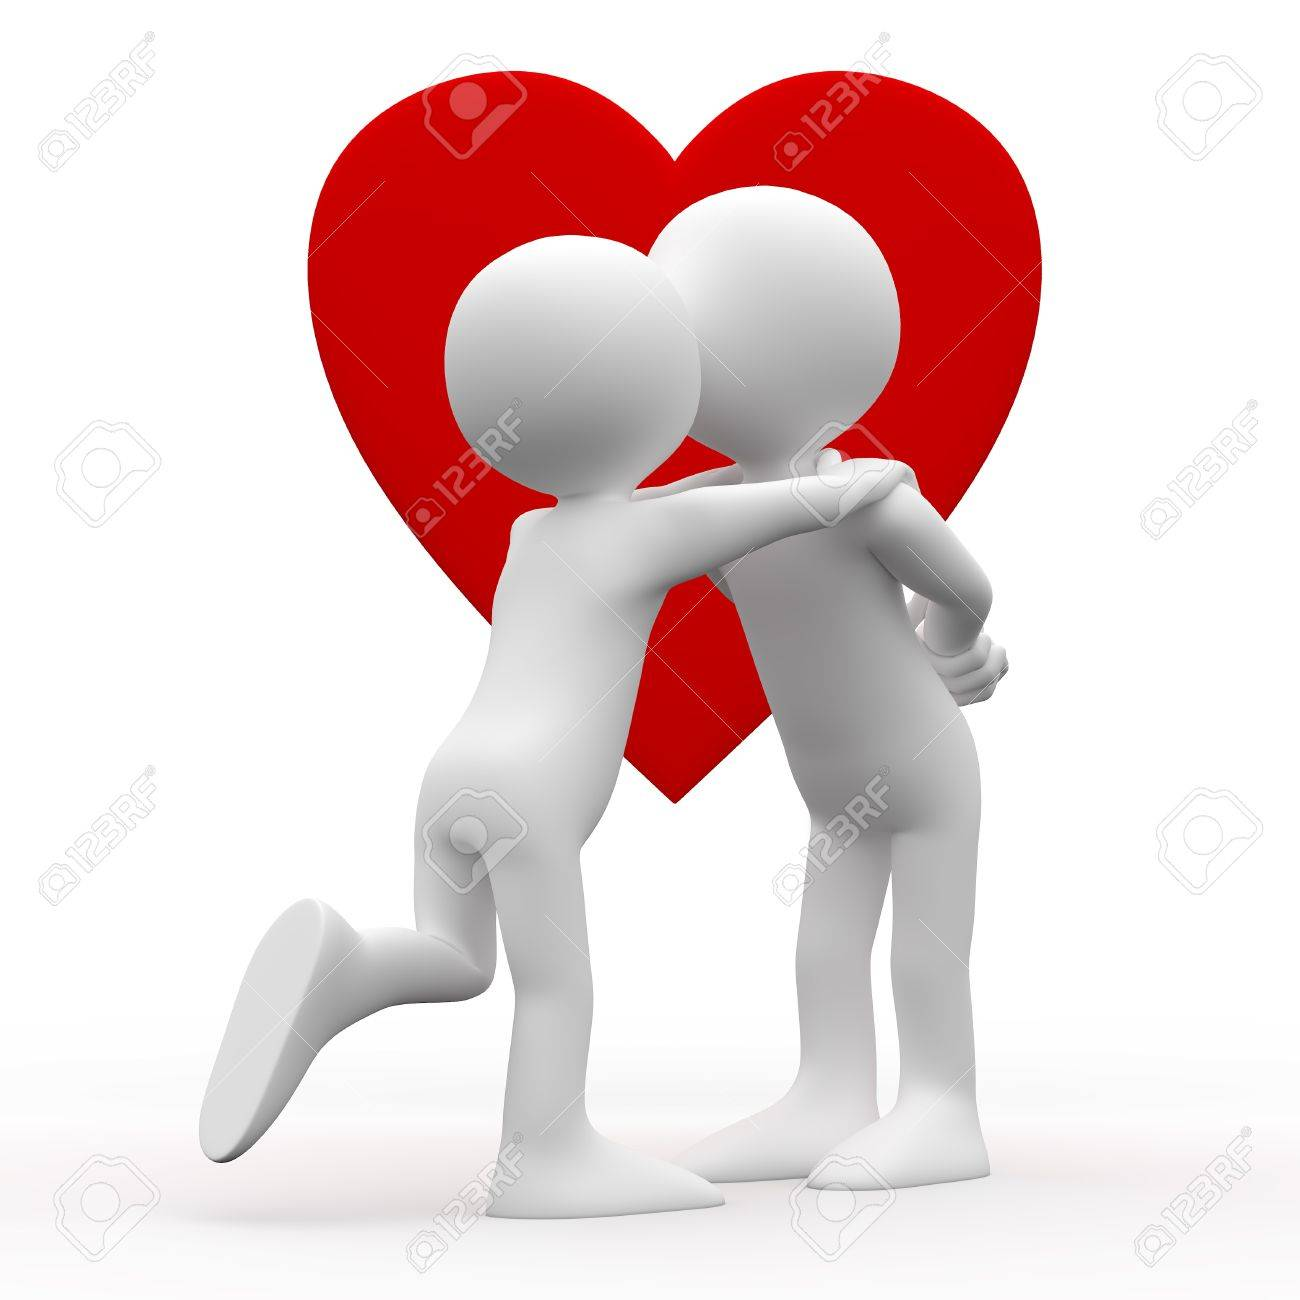 Woman kissing man with a heart background Stock Photo - 8559183